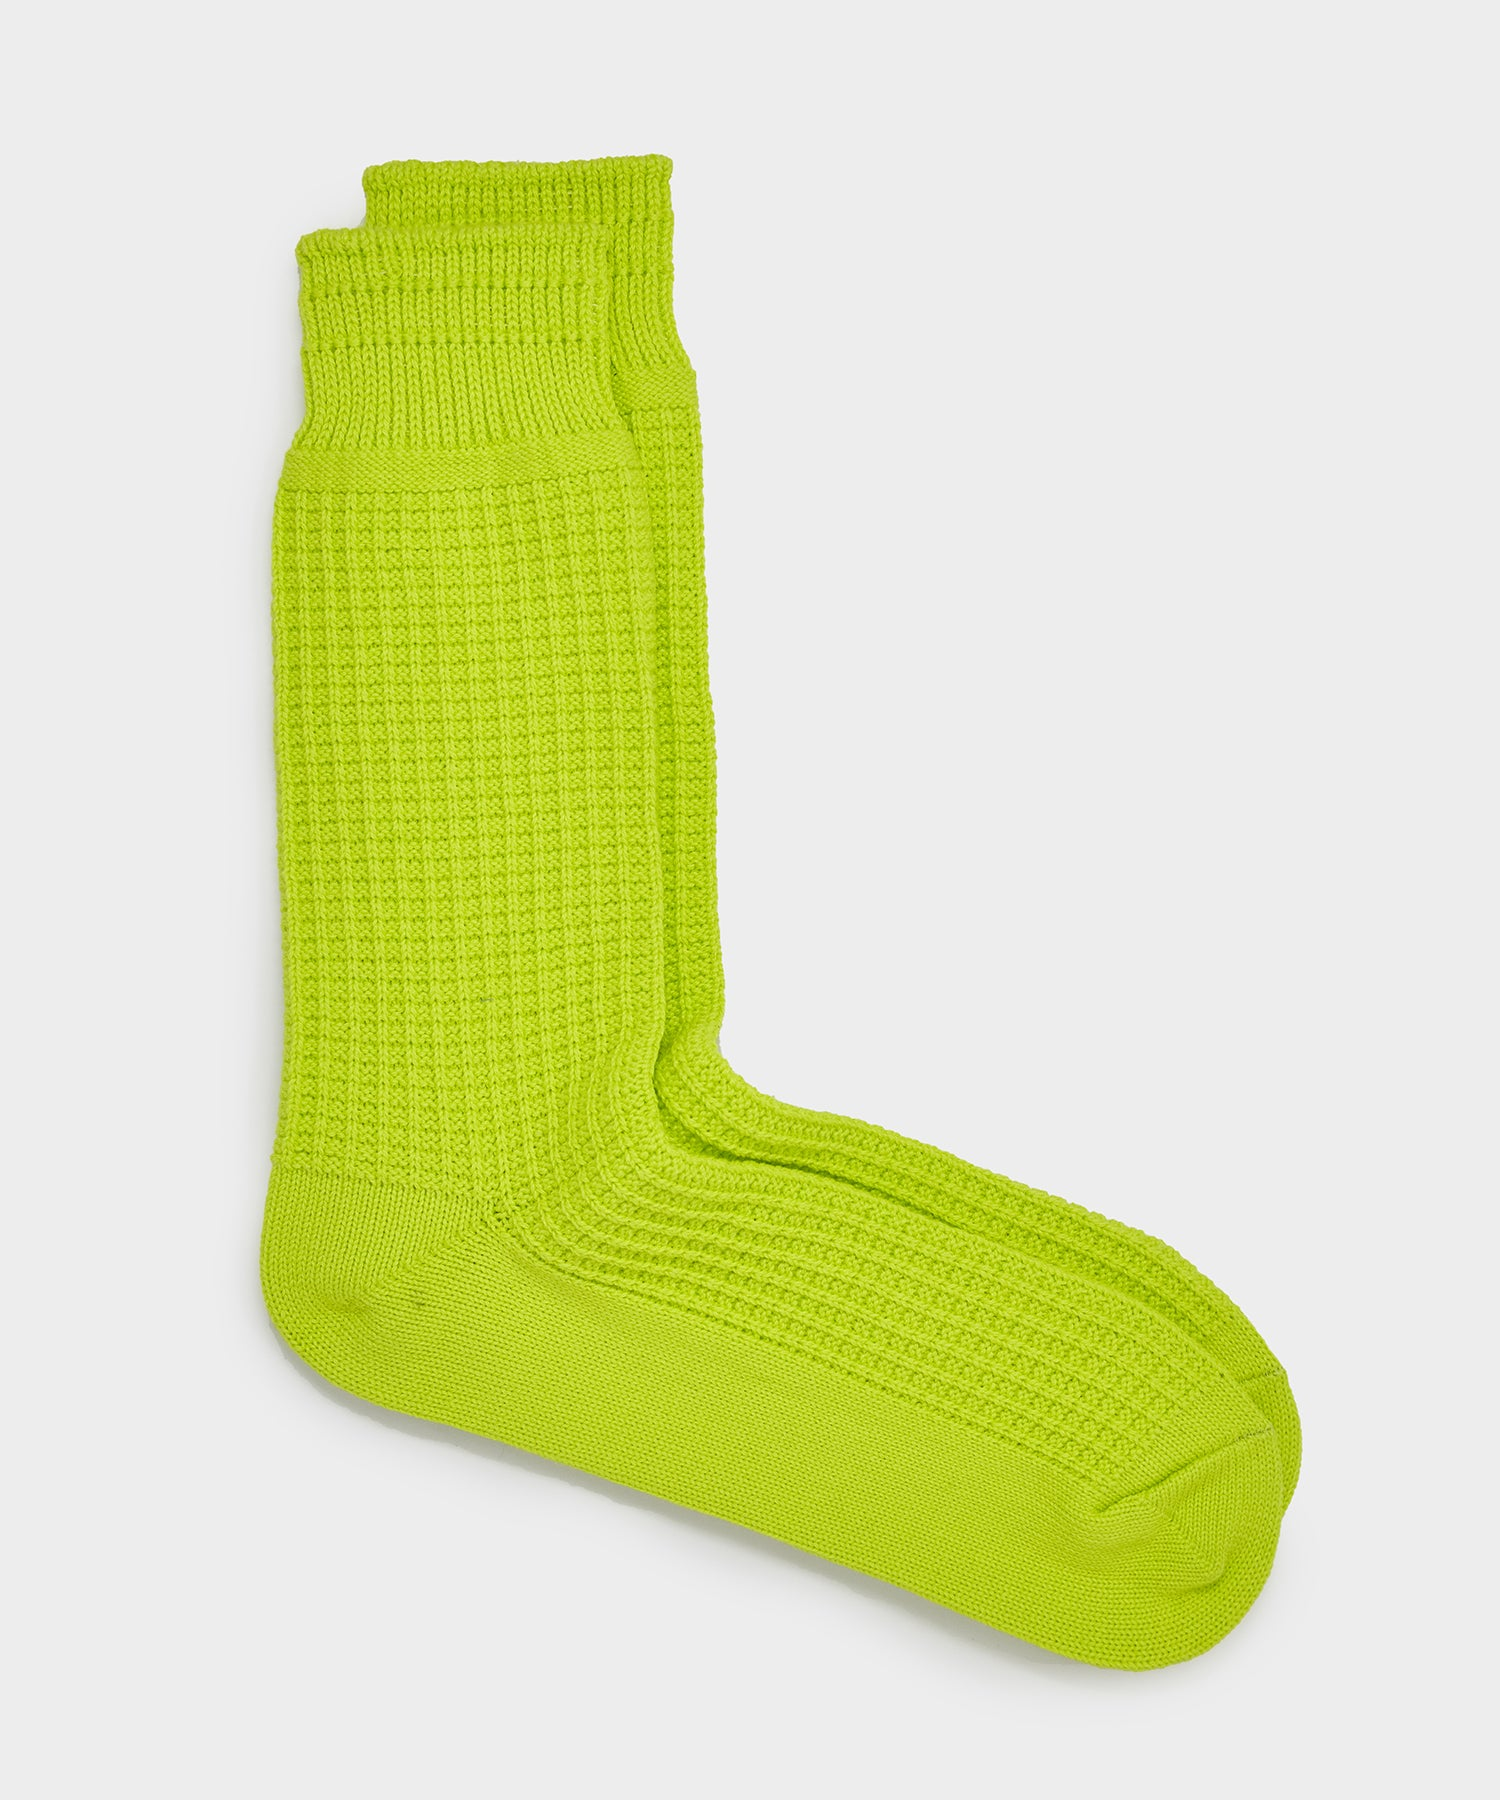 RoToTo Cotton Waffle Crew Socks in Neon Yellow